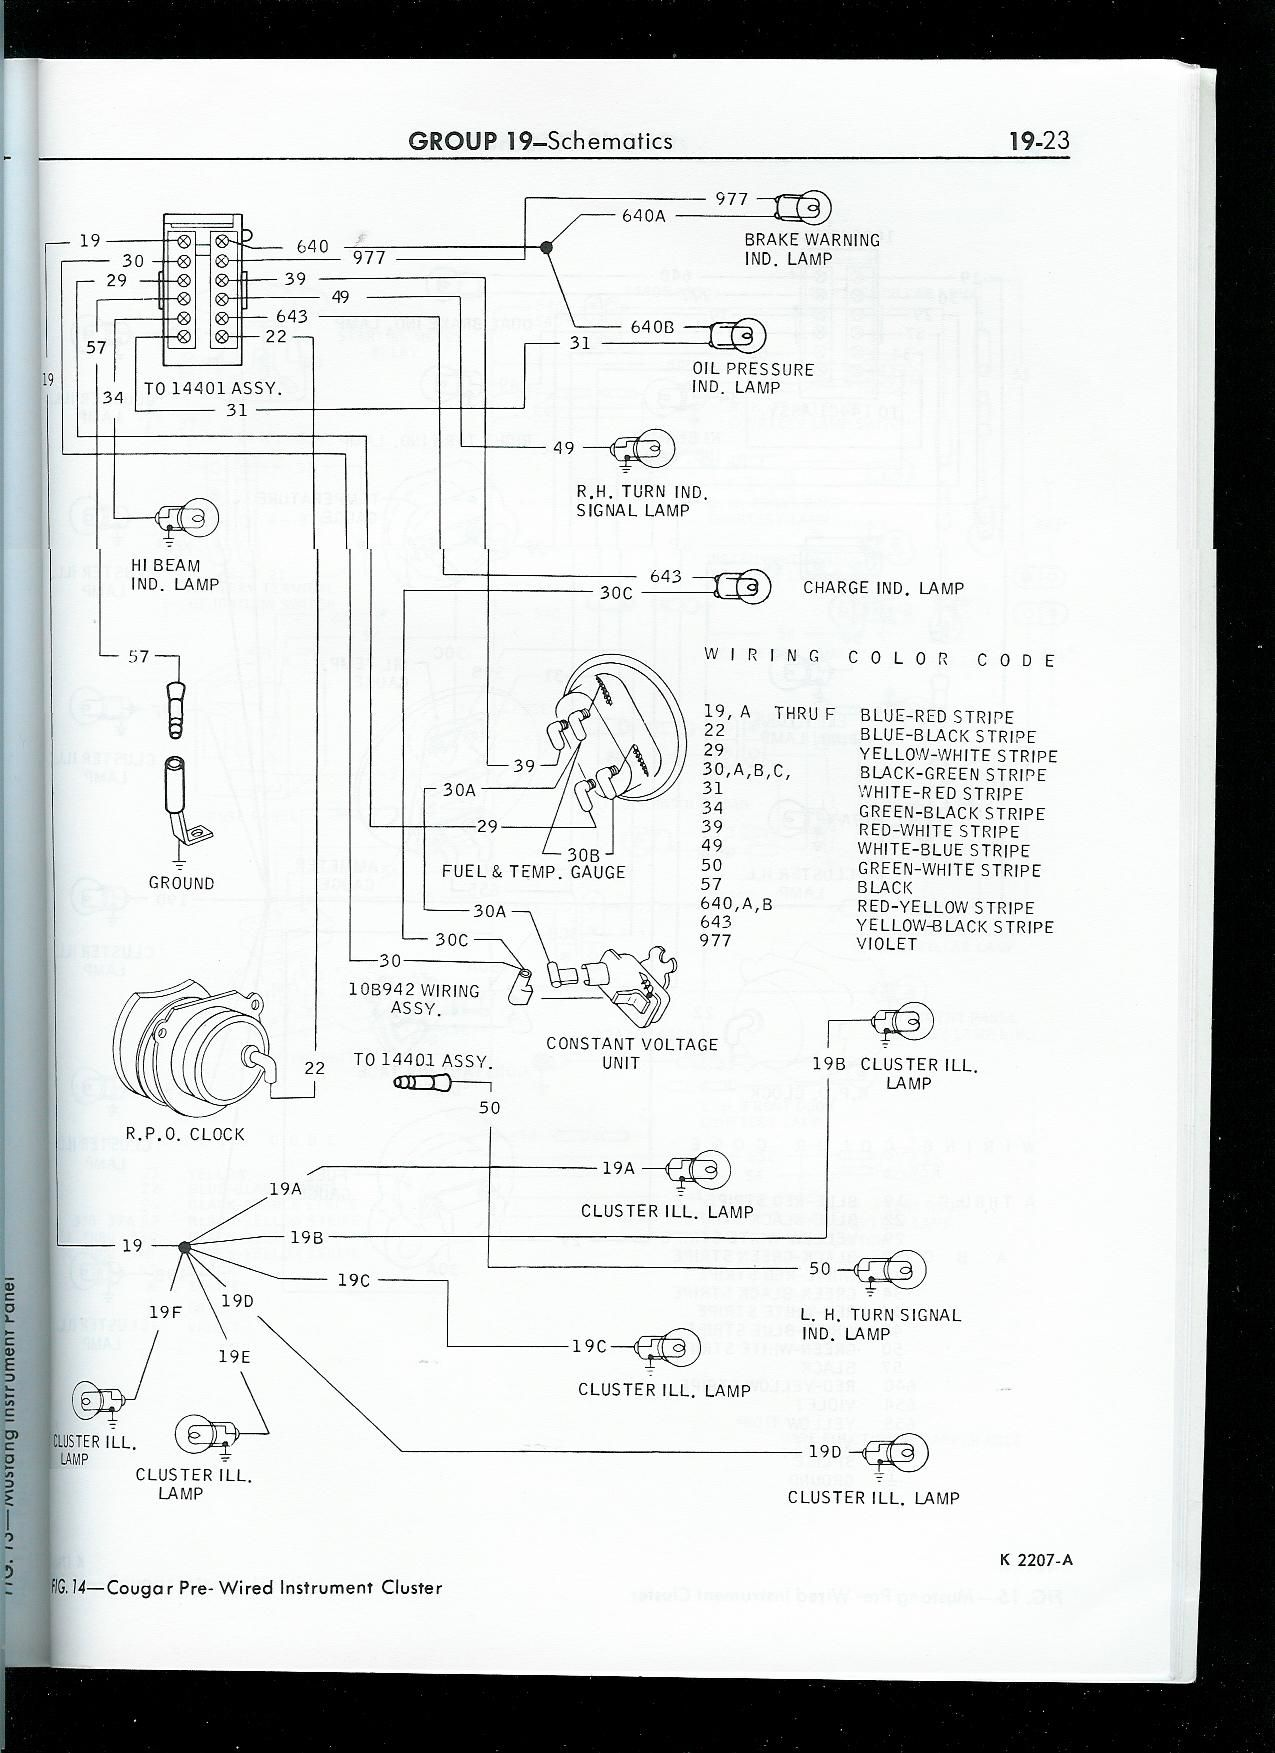 1967 Shelby Wiring Diagram Reinvent Your Vw Pdf Pin By Ruth Hagan On Mustang Pinterest And Rh Com